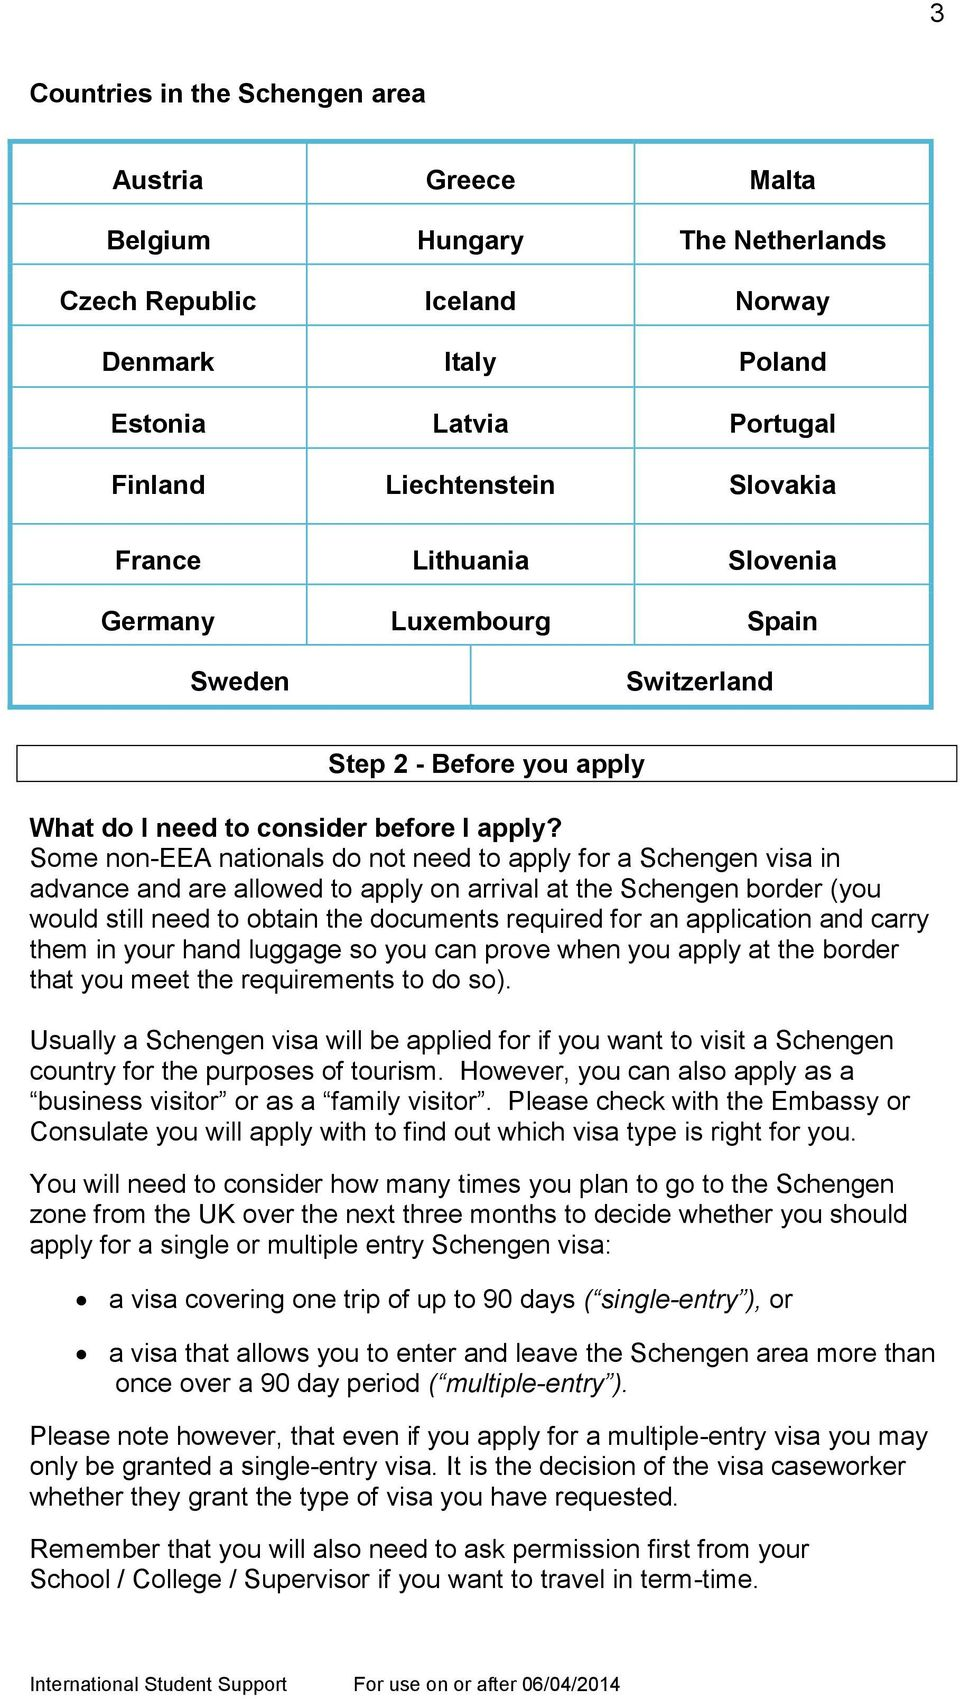 Some non-eea nationals do not need to apply for a Schengen visa in advance and are allowed to apply on arrival at the Schengen border (you would still need to obtain the documents required for an